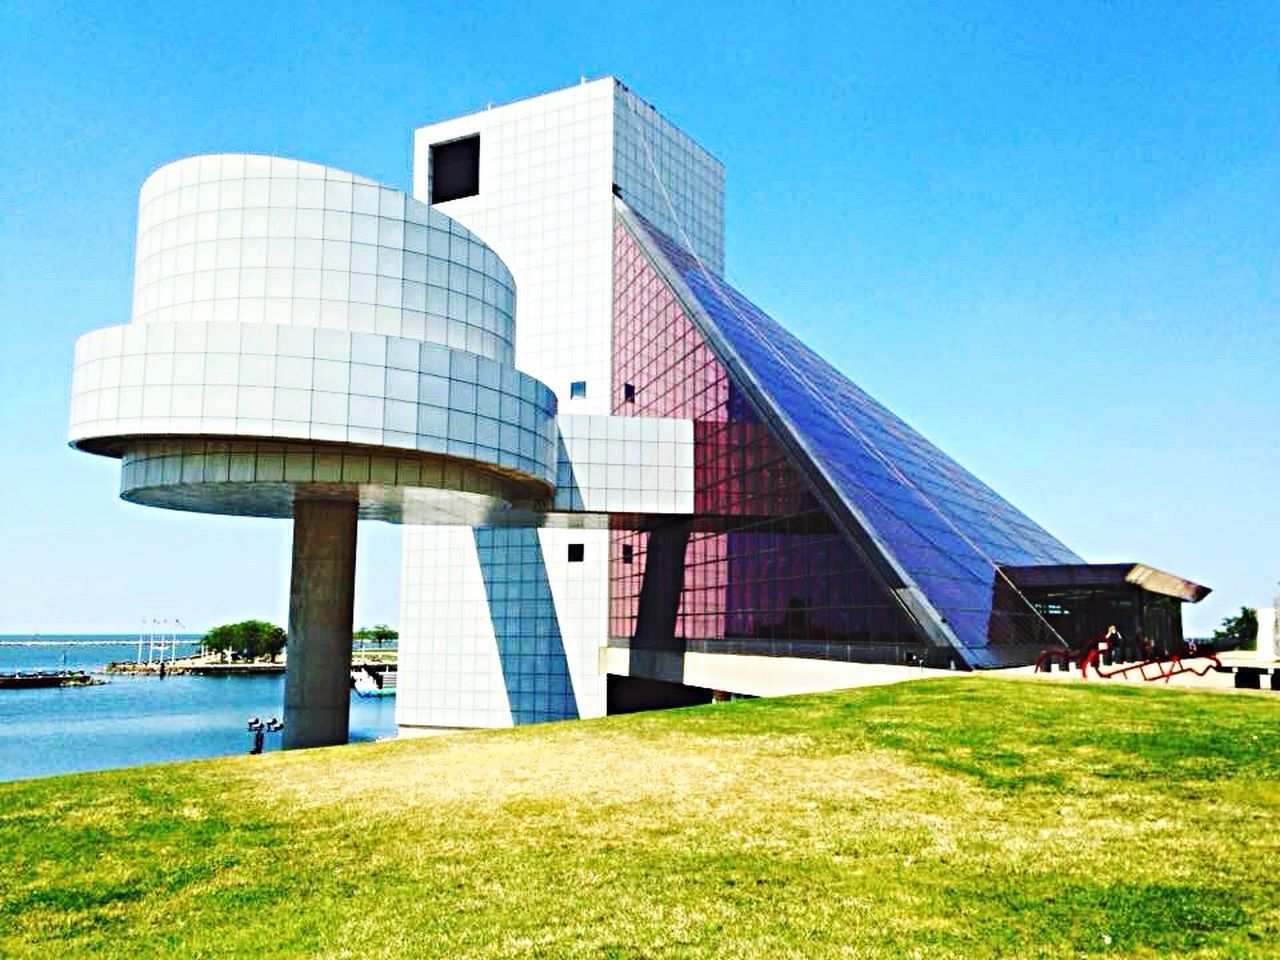 Architecture Building Exterior Built Structure Blue Sky Modern Rock N Roll Rock N Roll Hall Of Fame Grass Clear Sky Outdoors No People Day